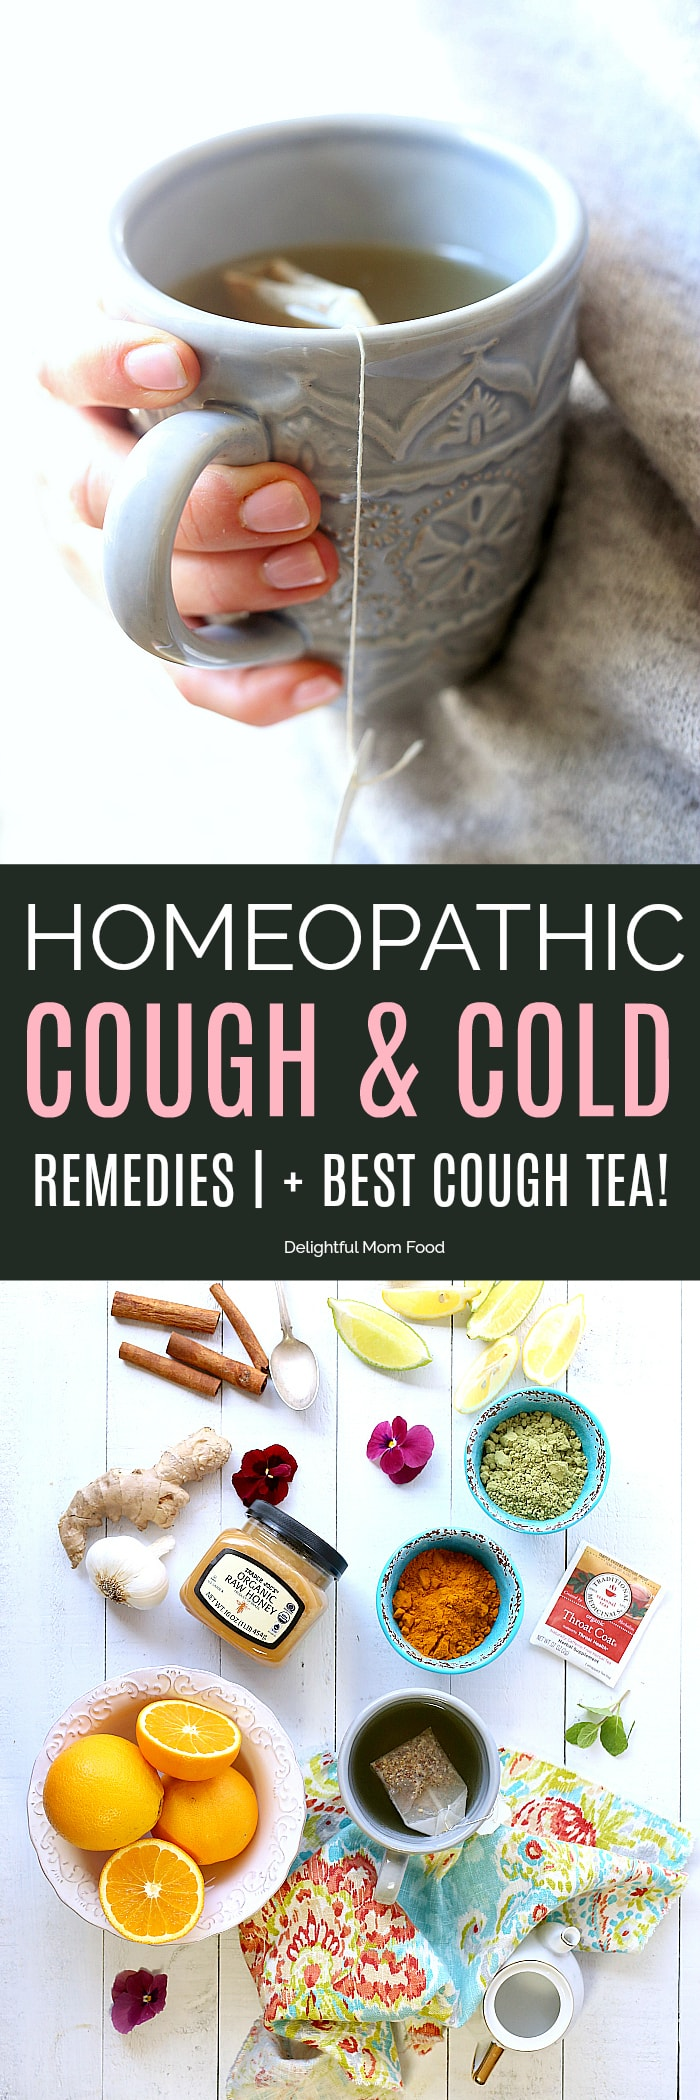 Natural remedies for cough, cold and flu symptoms to help heal your body quickly, boost immunity plus grandma's best tea recipe to fight a naughty cough that doesn't seem to go away!#homeopathic #remedies #healing #cough #cold #flu #home #natural #tea | Delightfulmomfood.com